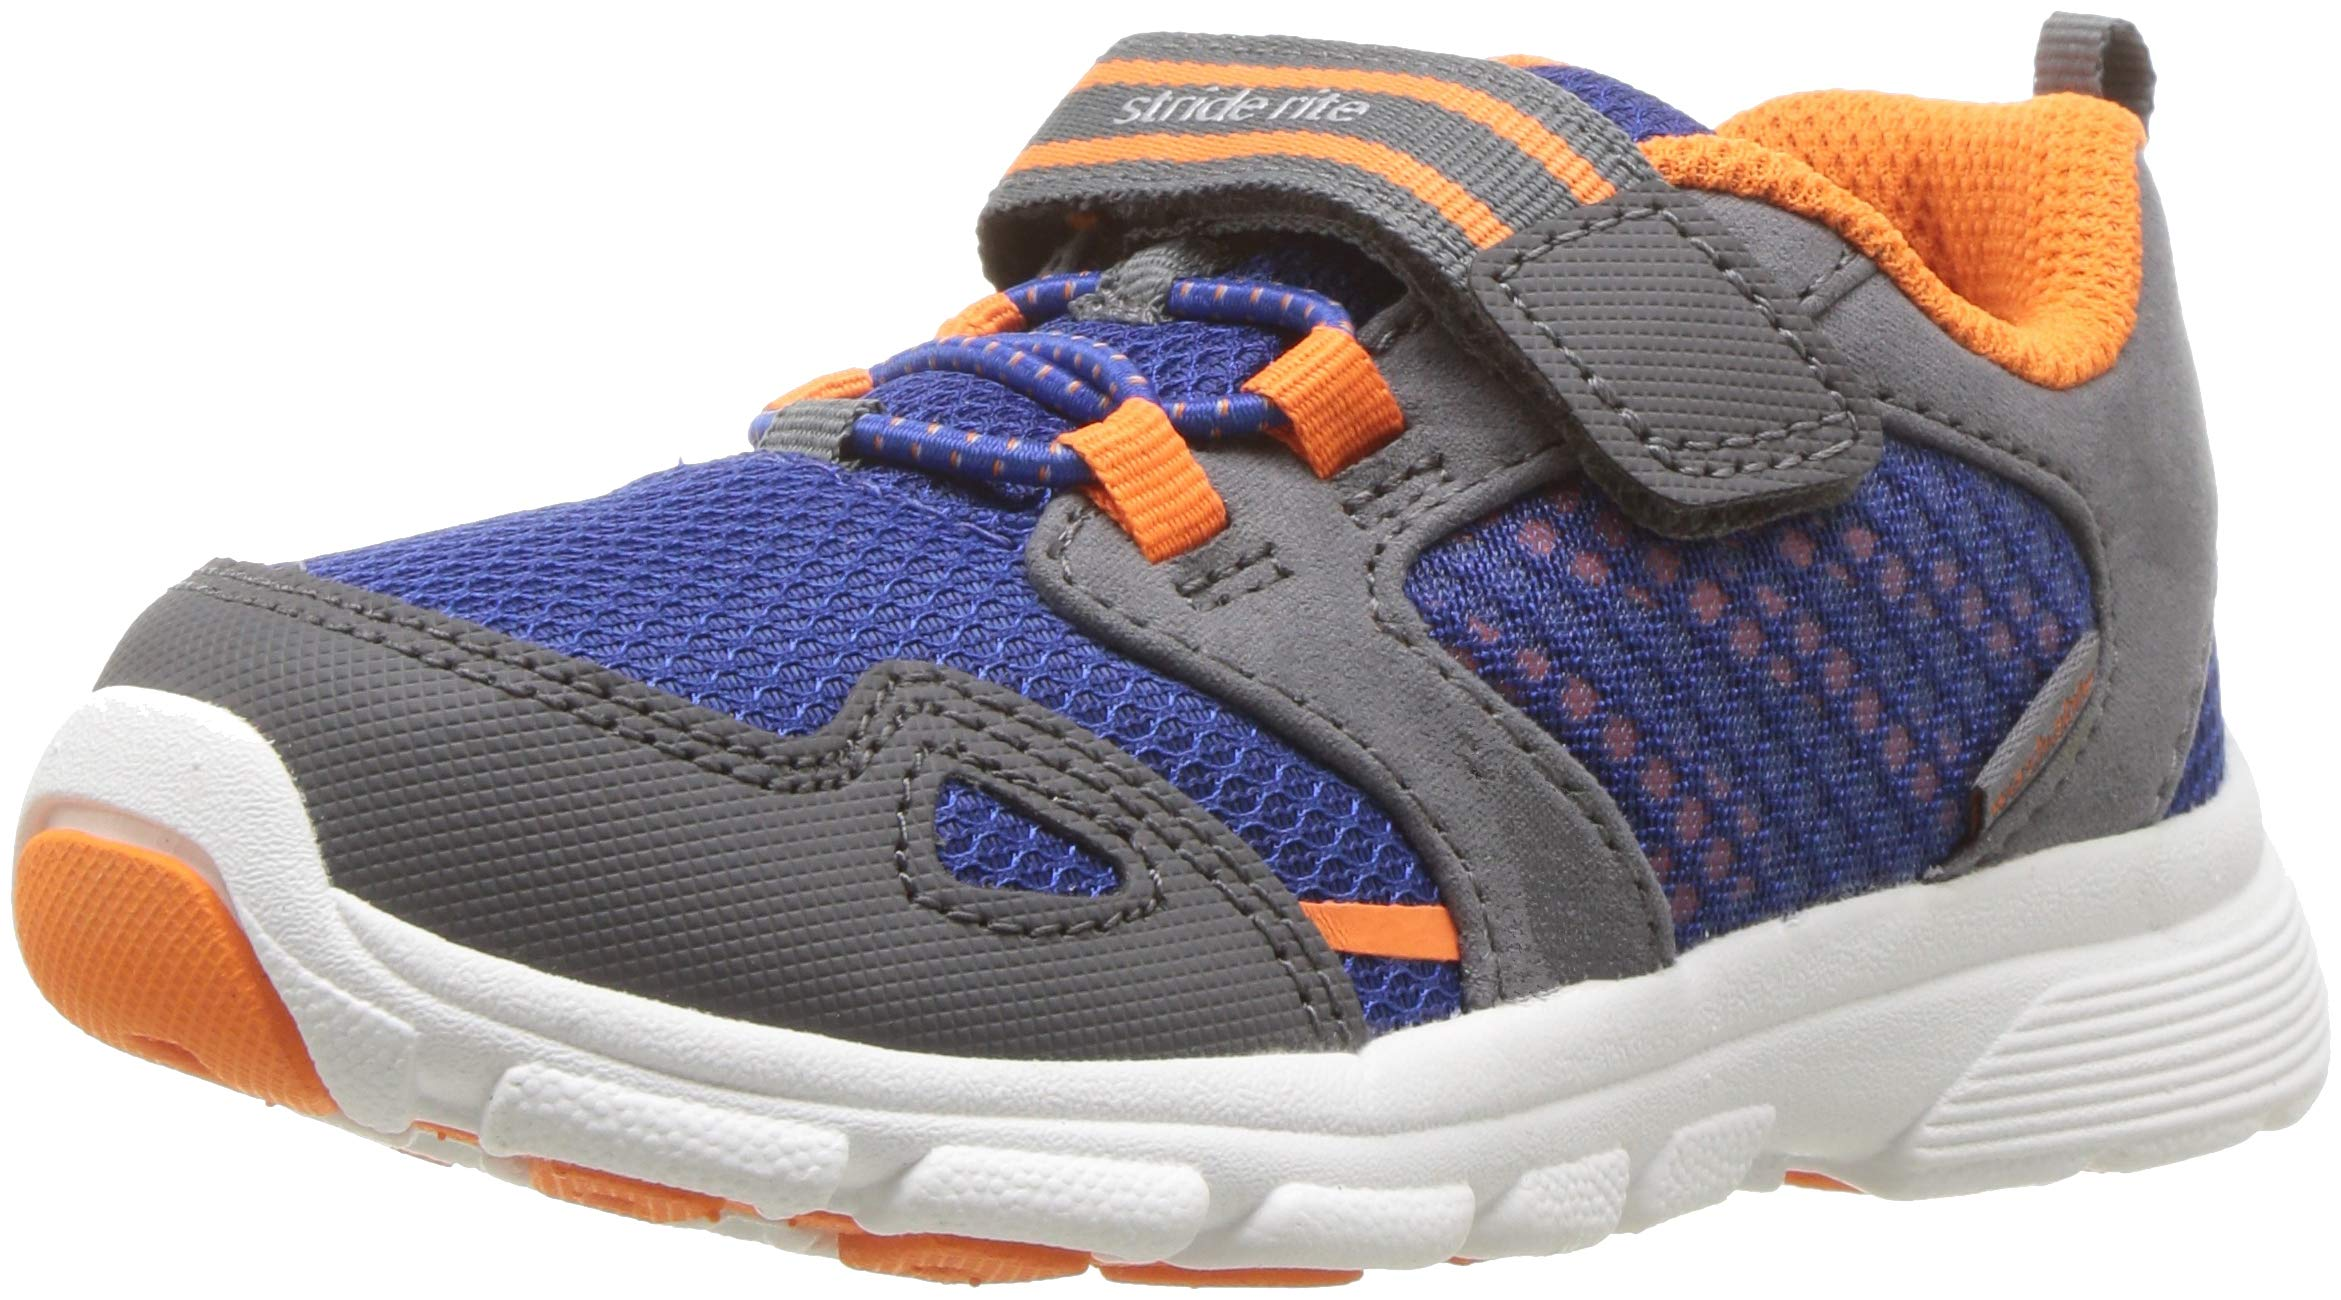 Stride Rite Boys' Made 2 Play Taylor Sneaker, Navy/Orange 7.5 M US Toddler